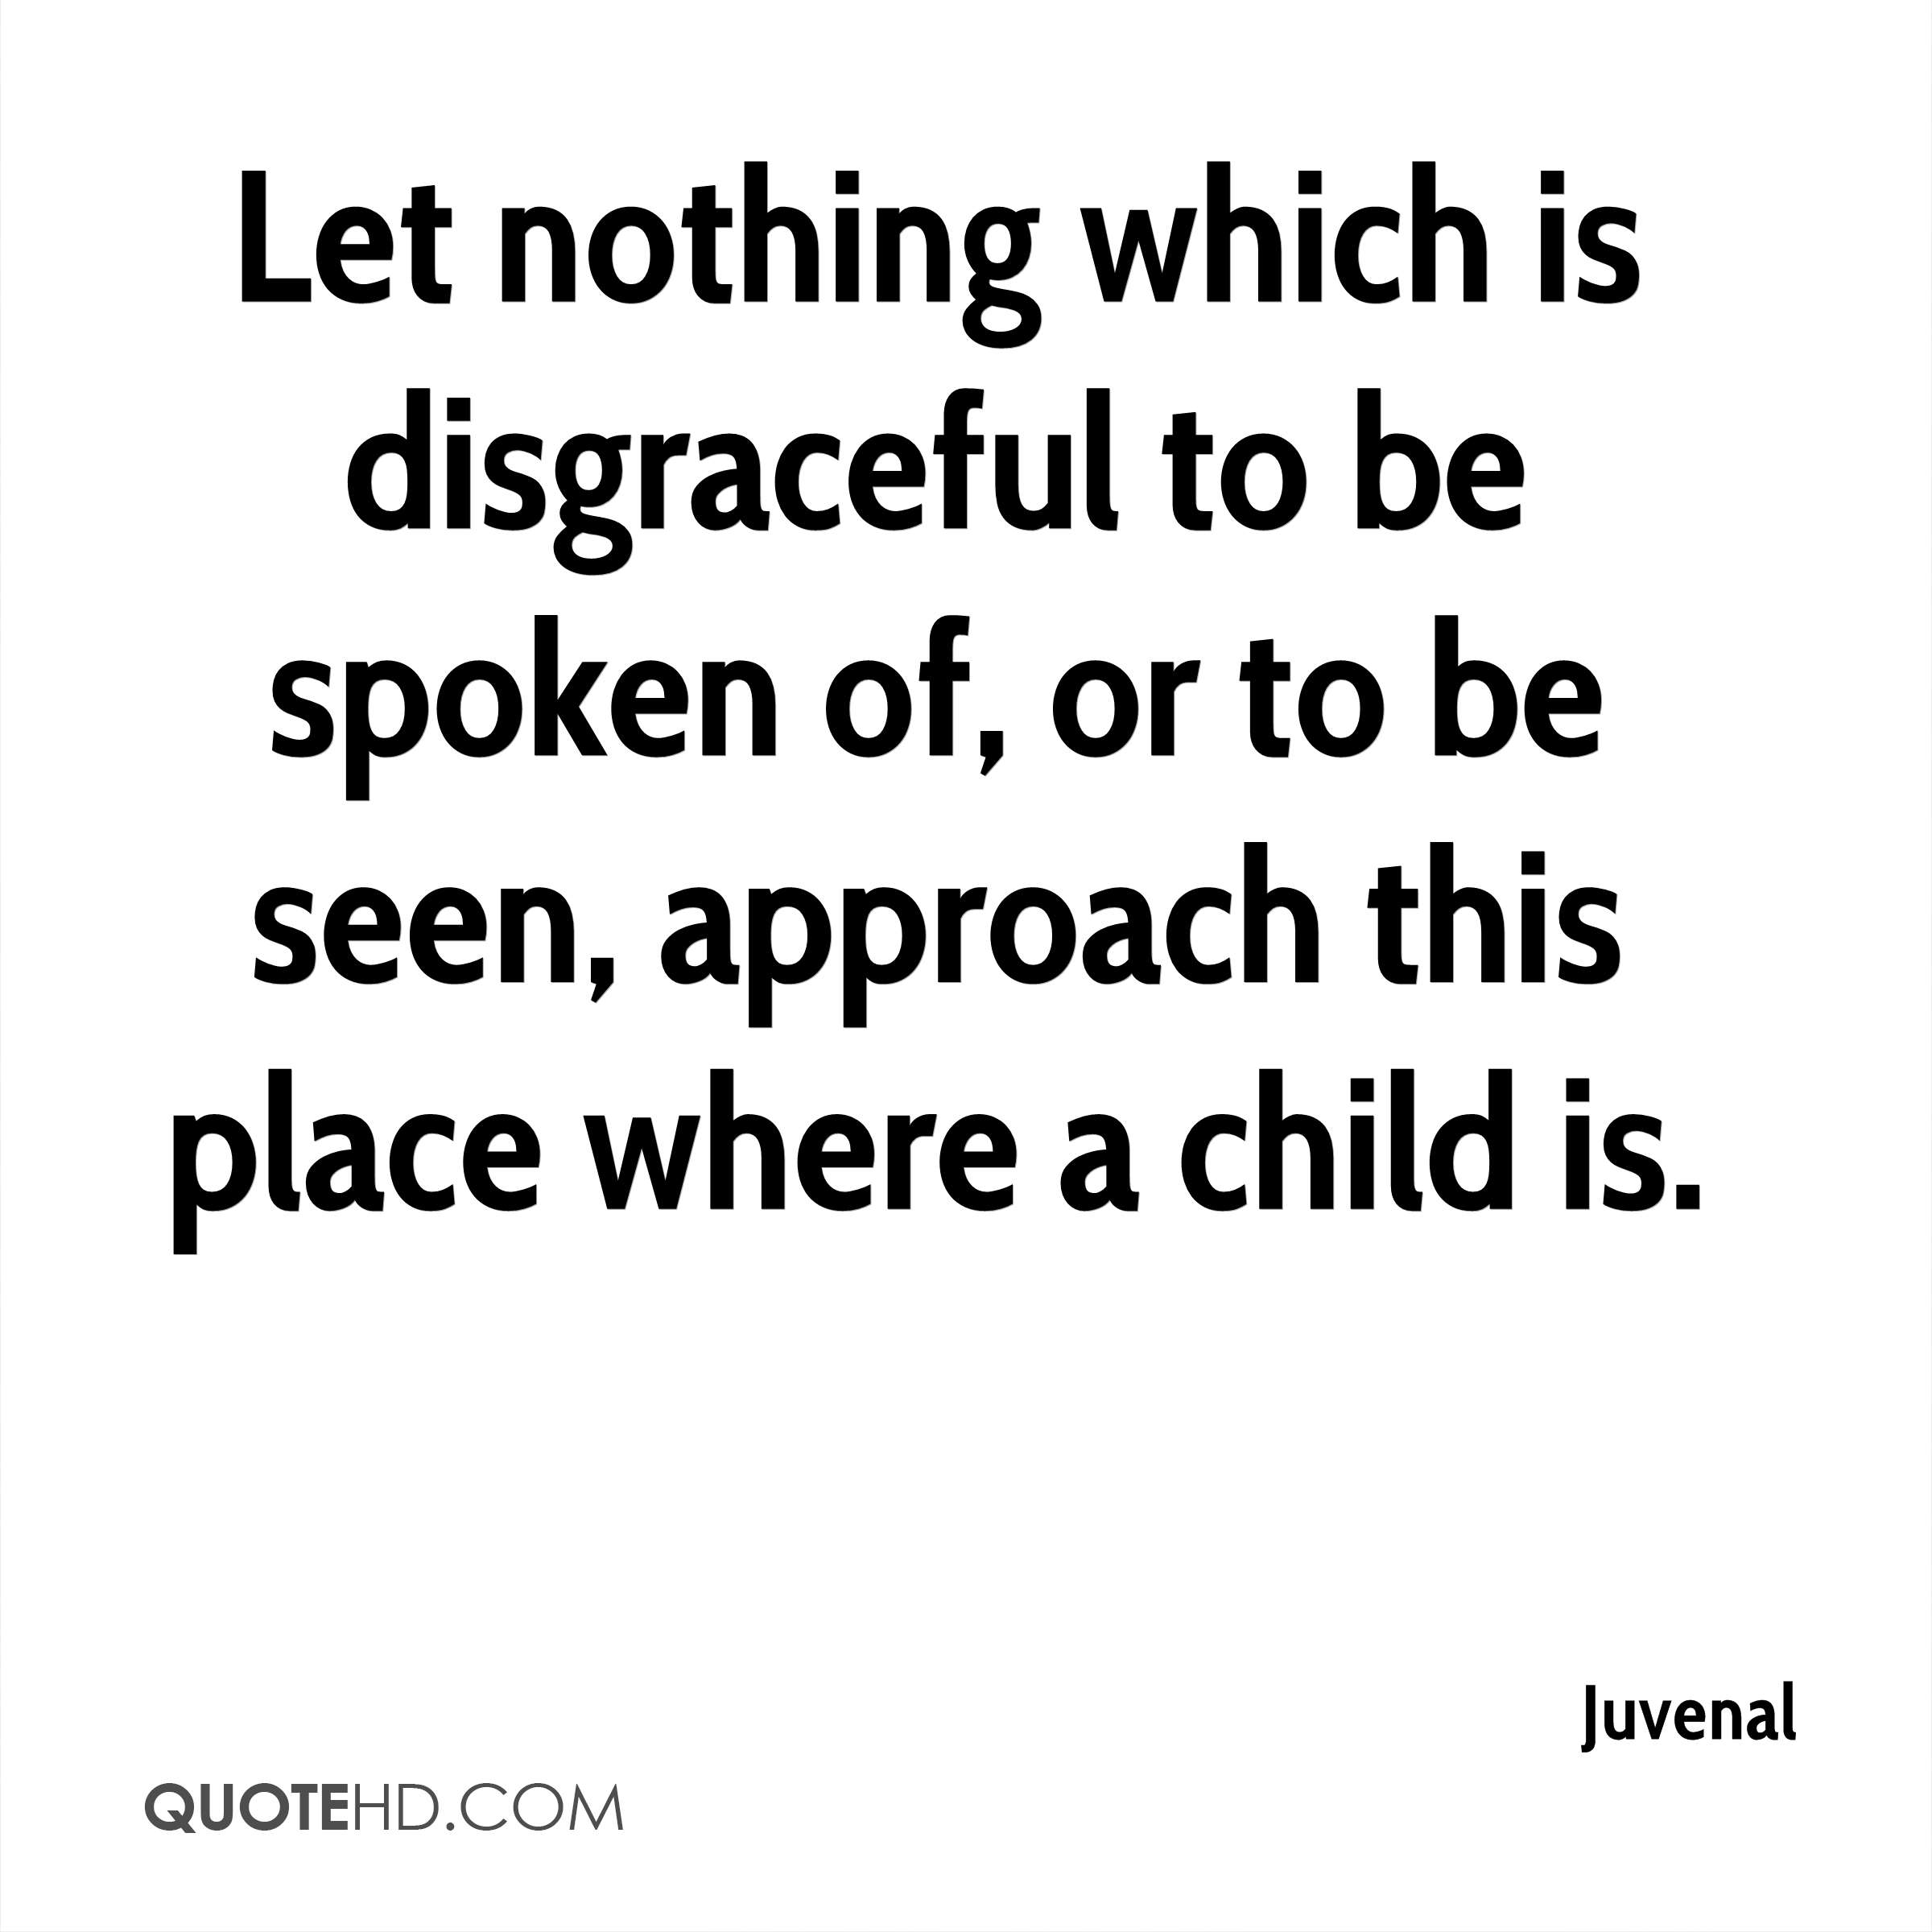 Let nothing which is disgraceful to be spoken of, or to be seen, approach this place where a child is.